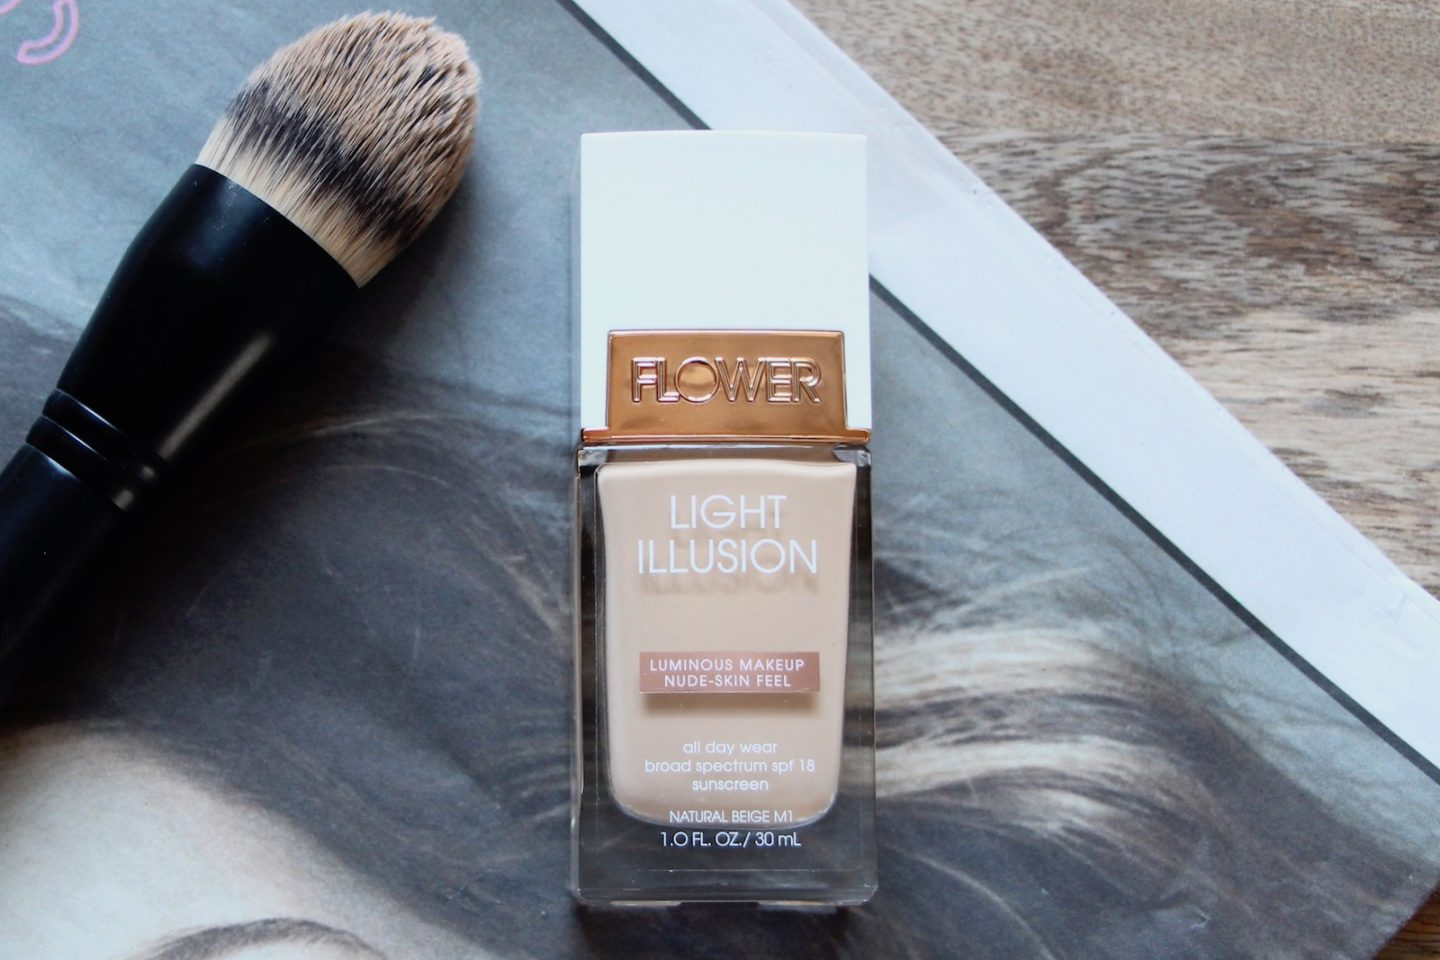 Flower Beauty Light Illusion foundation review